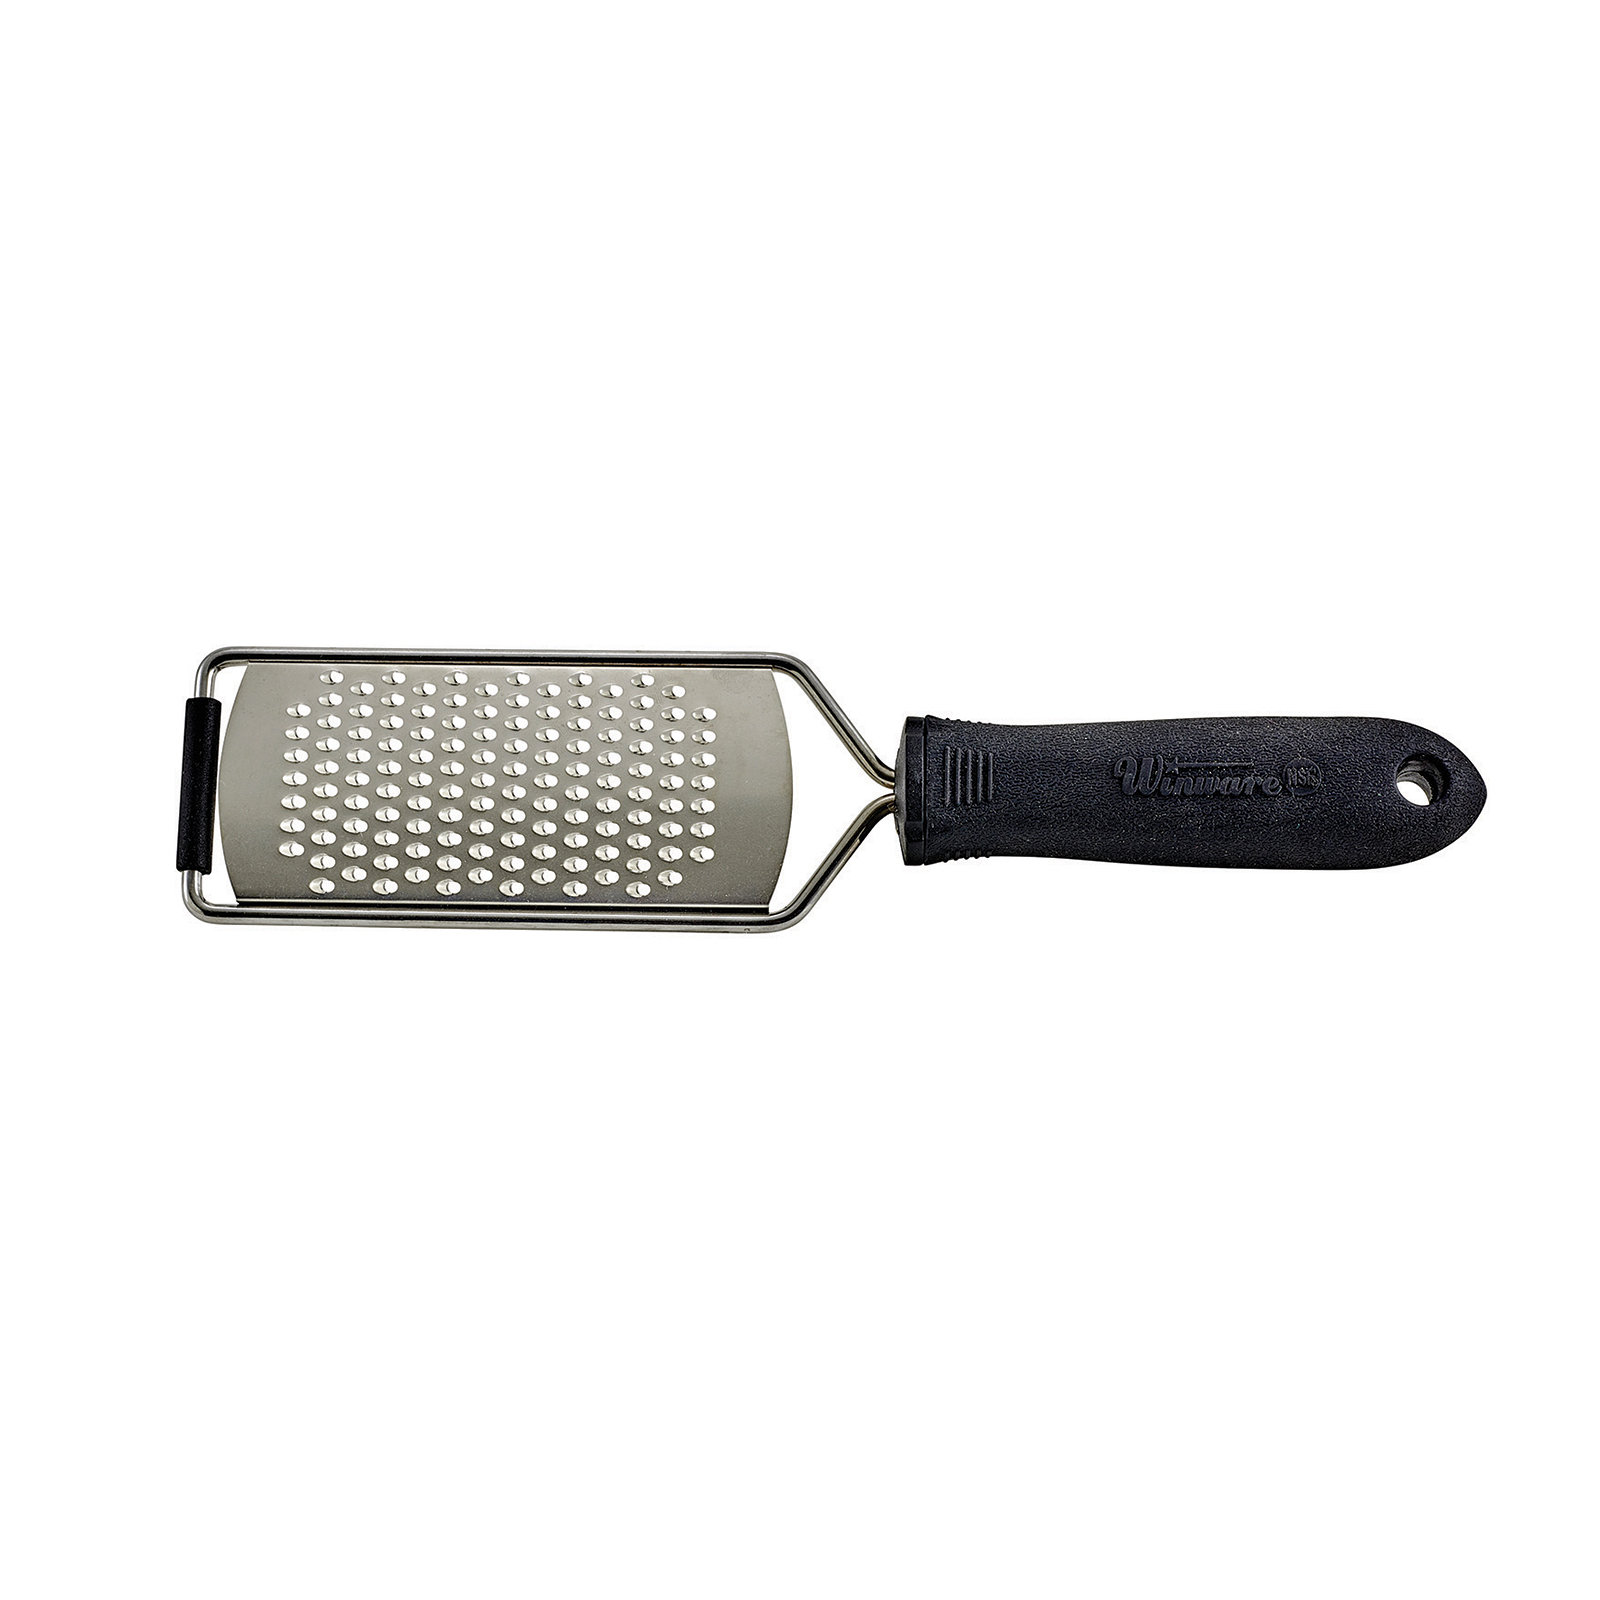 Winco VP-311 grater, manual